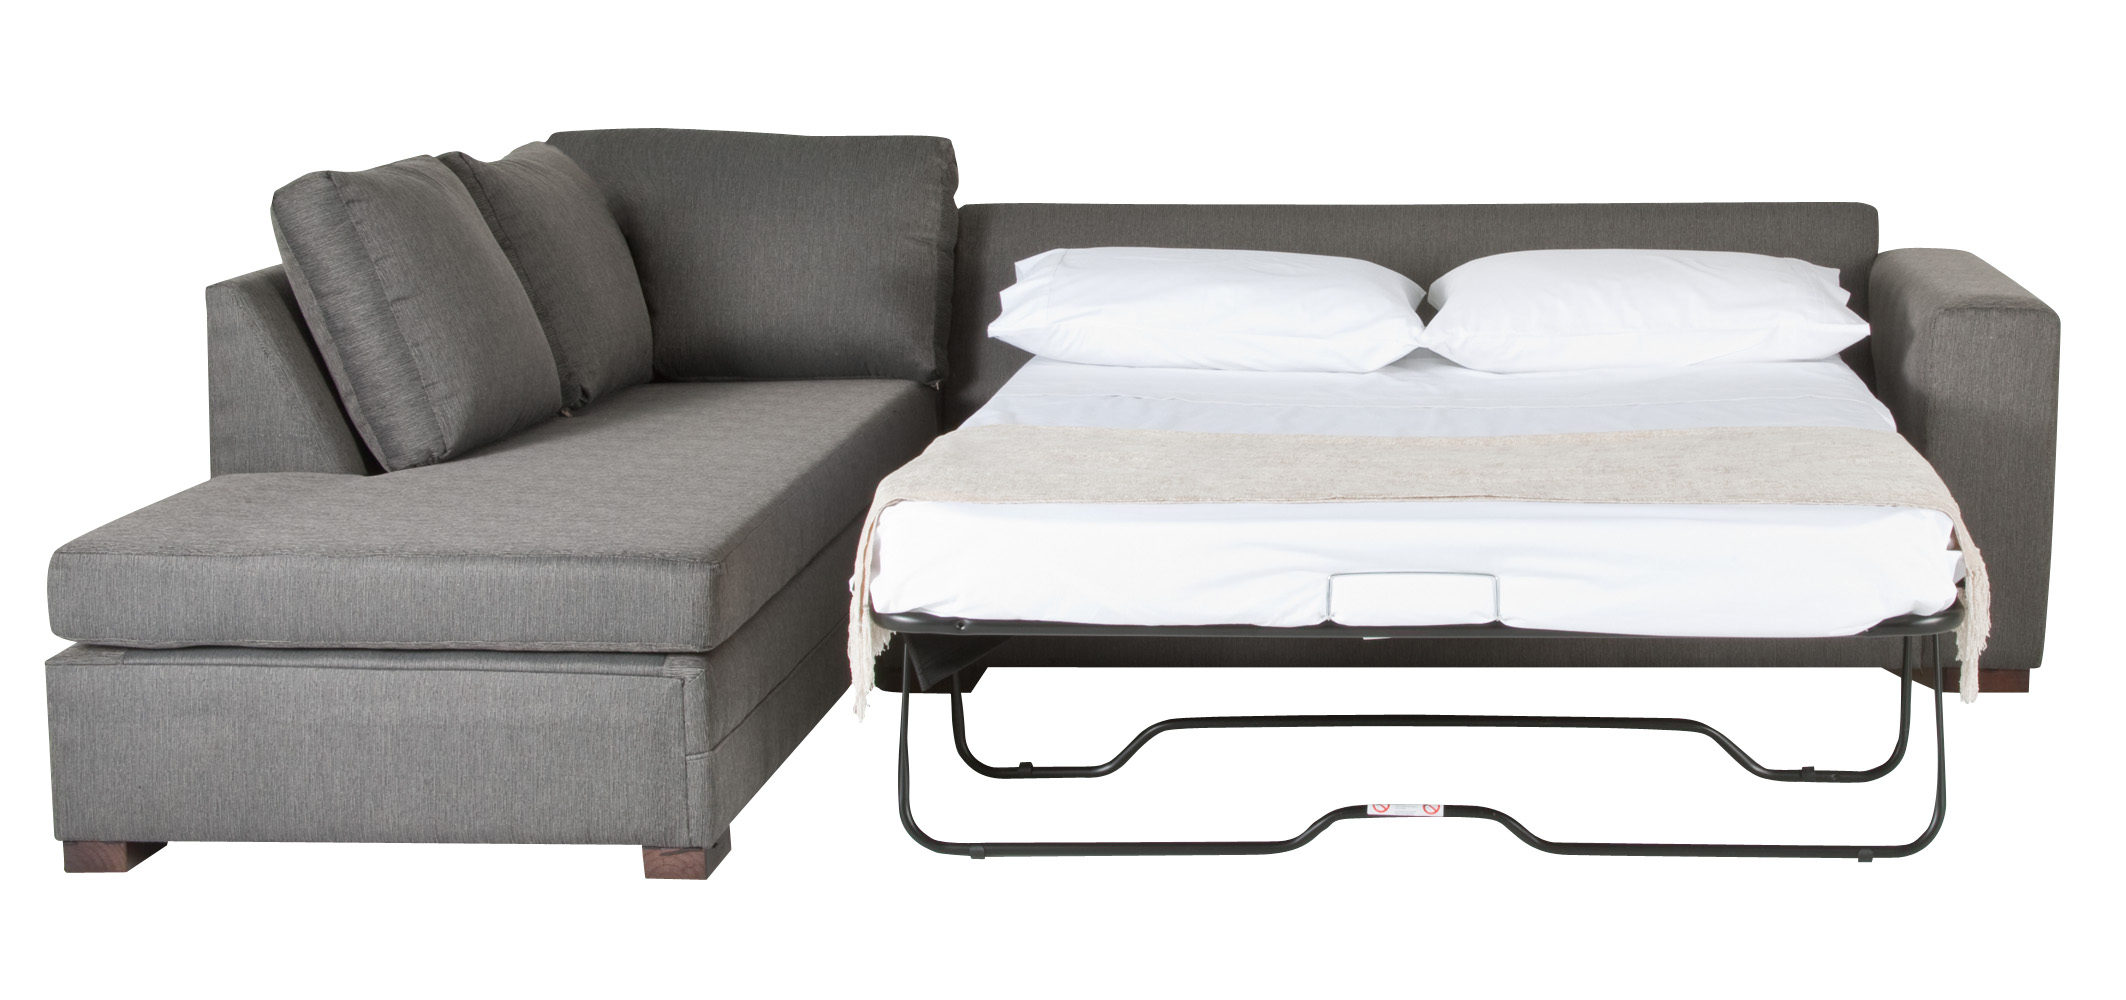 couch sofa bed fabulous lighting inspiration and also sofas wayfair beds futon sofa beds  cheap JZQLDNW